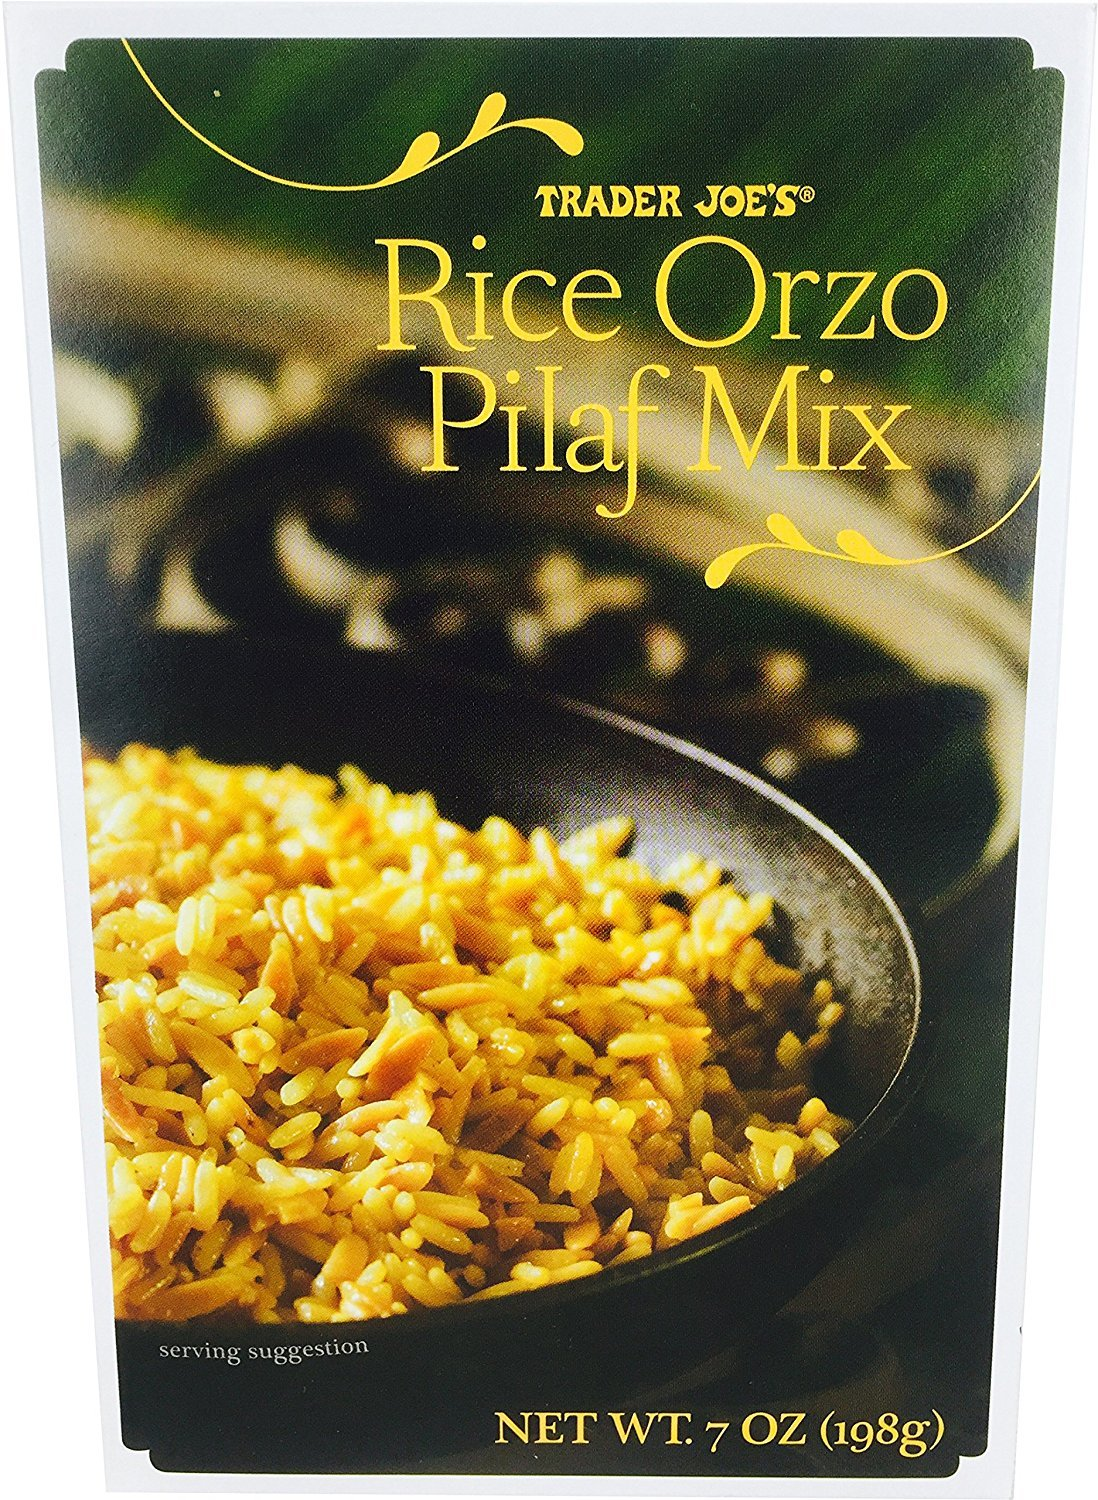 Trader Joe's Rice Orzo Pilaf Mix 7oz by Trader Joe's